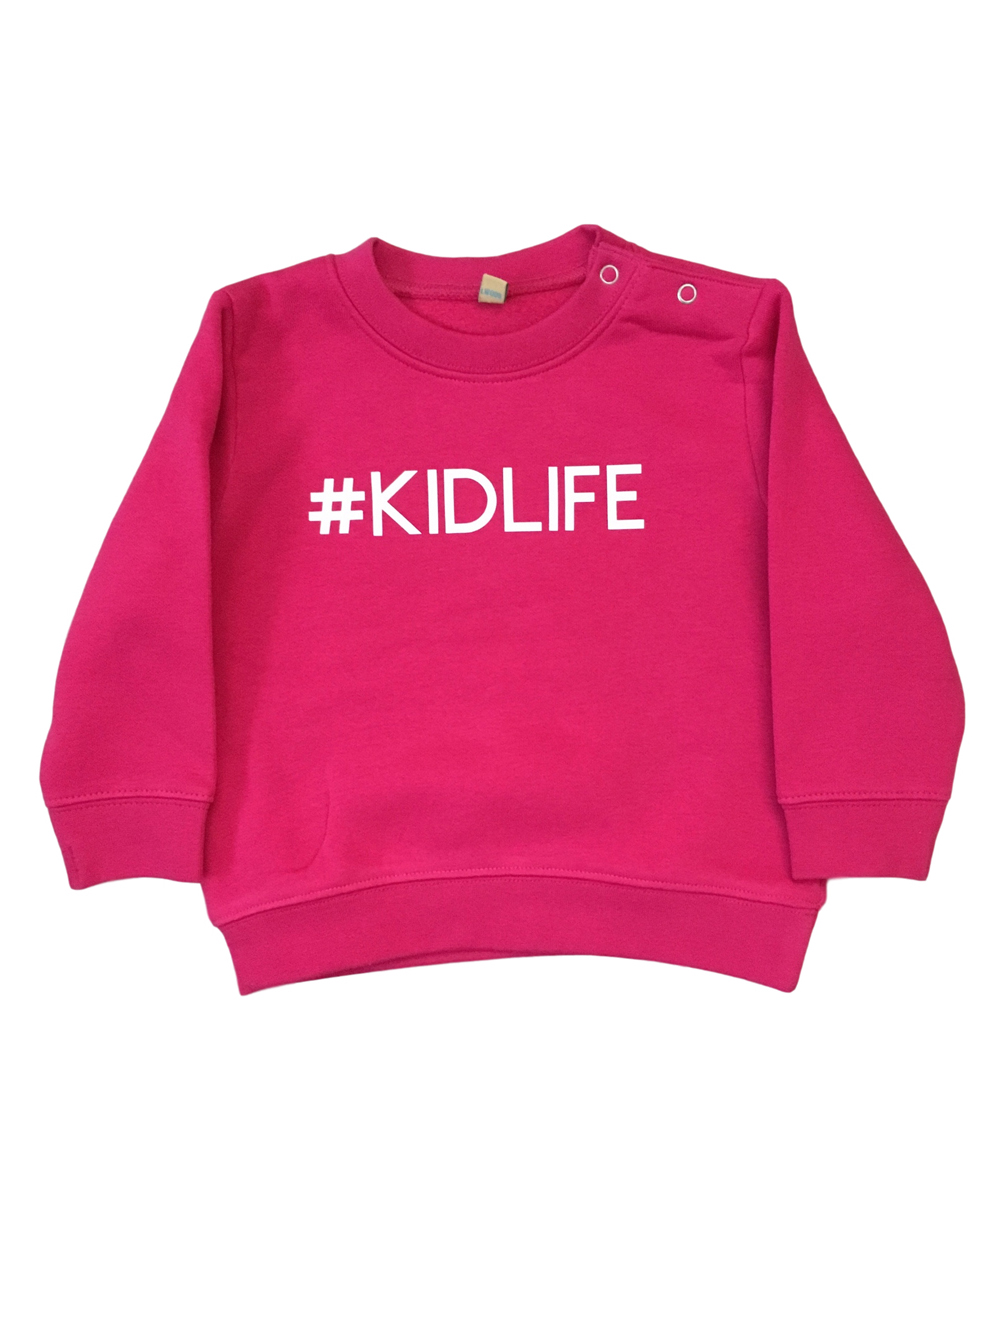 Childrens – Kidlife Pink Sweatshirt 12 – 18 Months